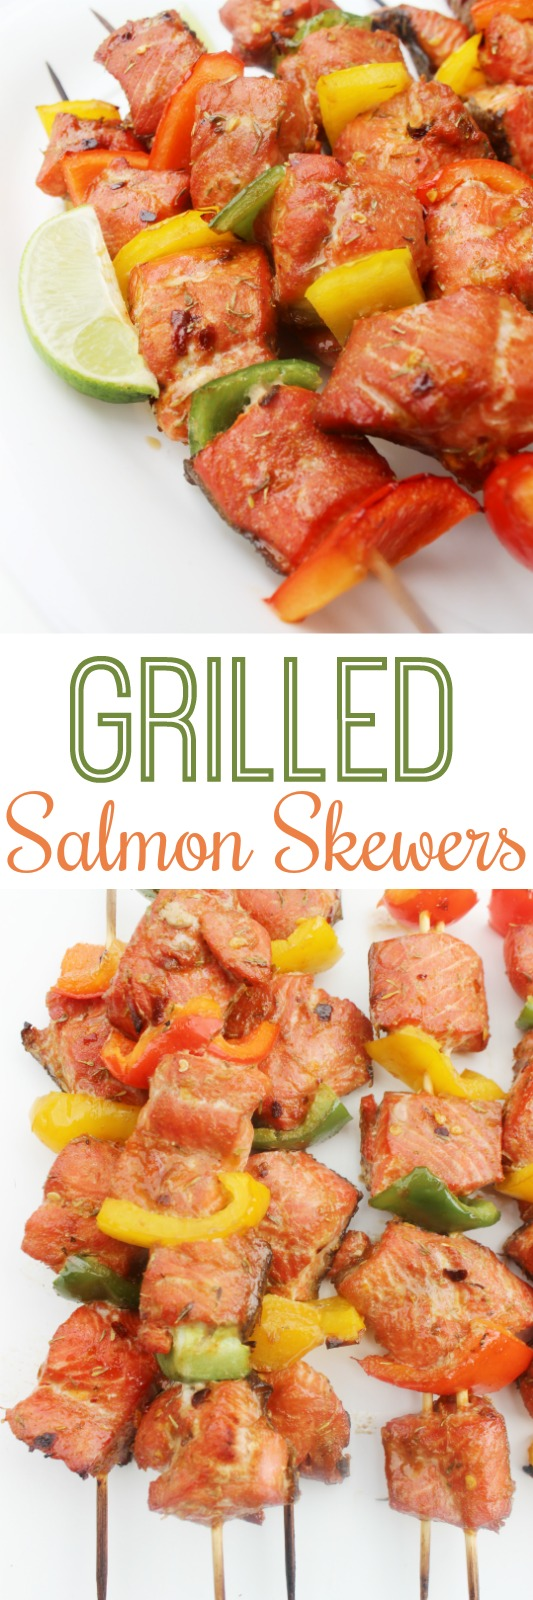 Grilled Salmon Skewers - incredibly delicious and easy kebabs. Marinated in apricot sauce and grilled to perfection. The marinade is also great with chicken and beef.